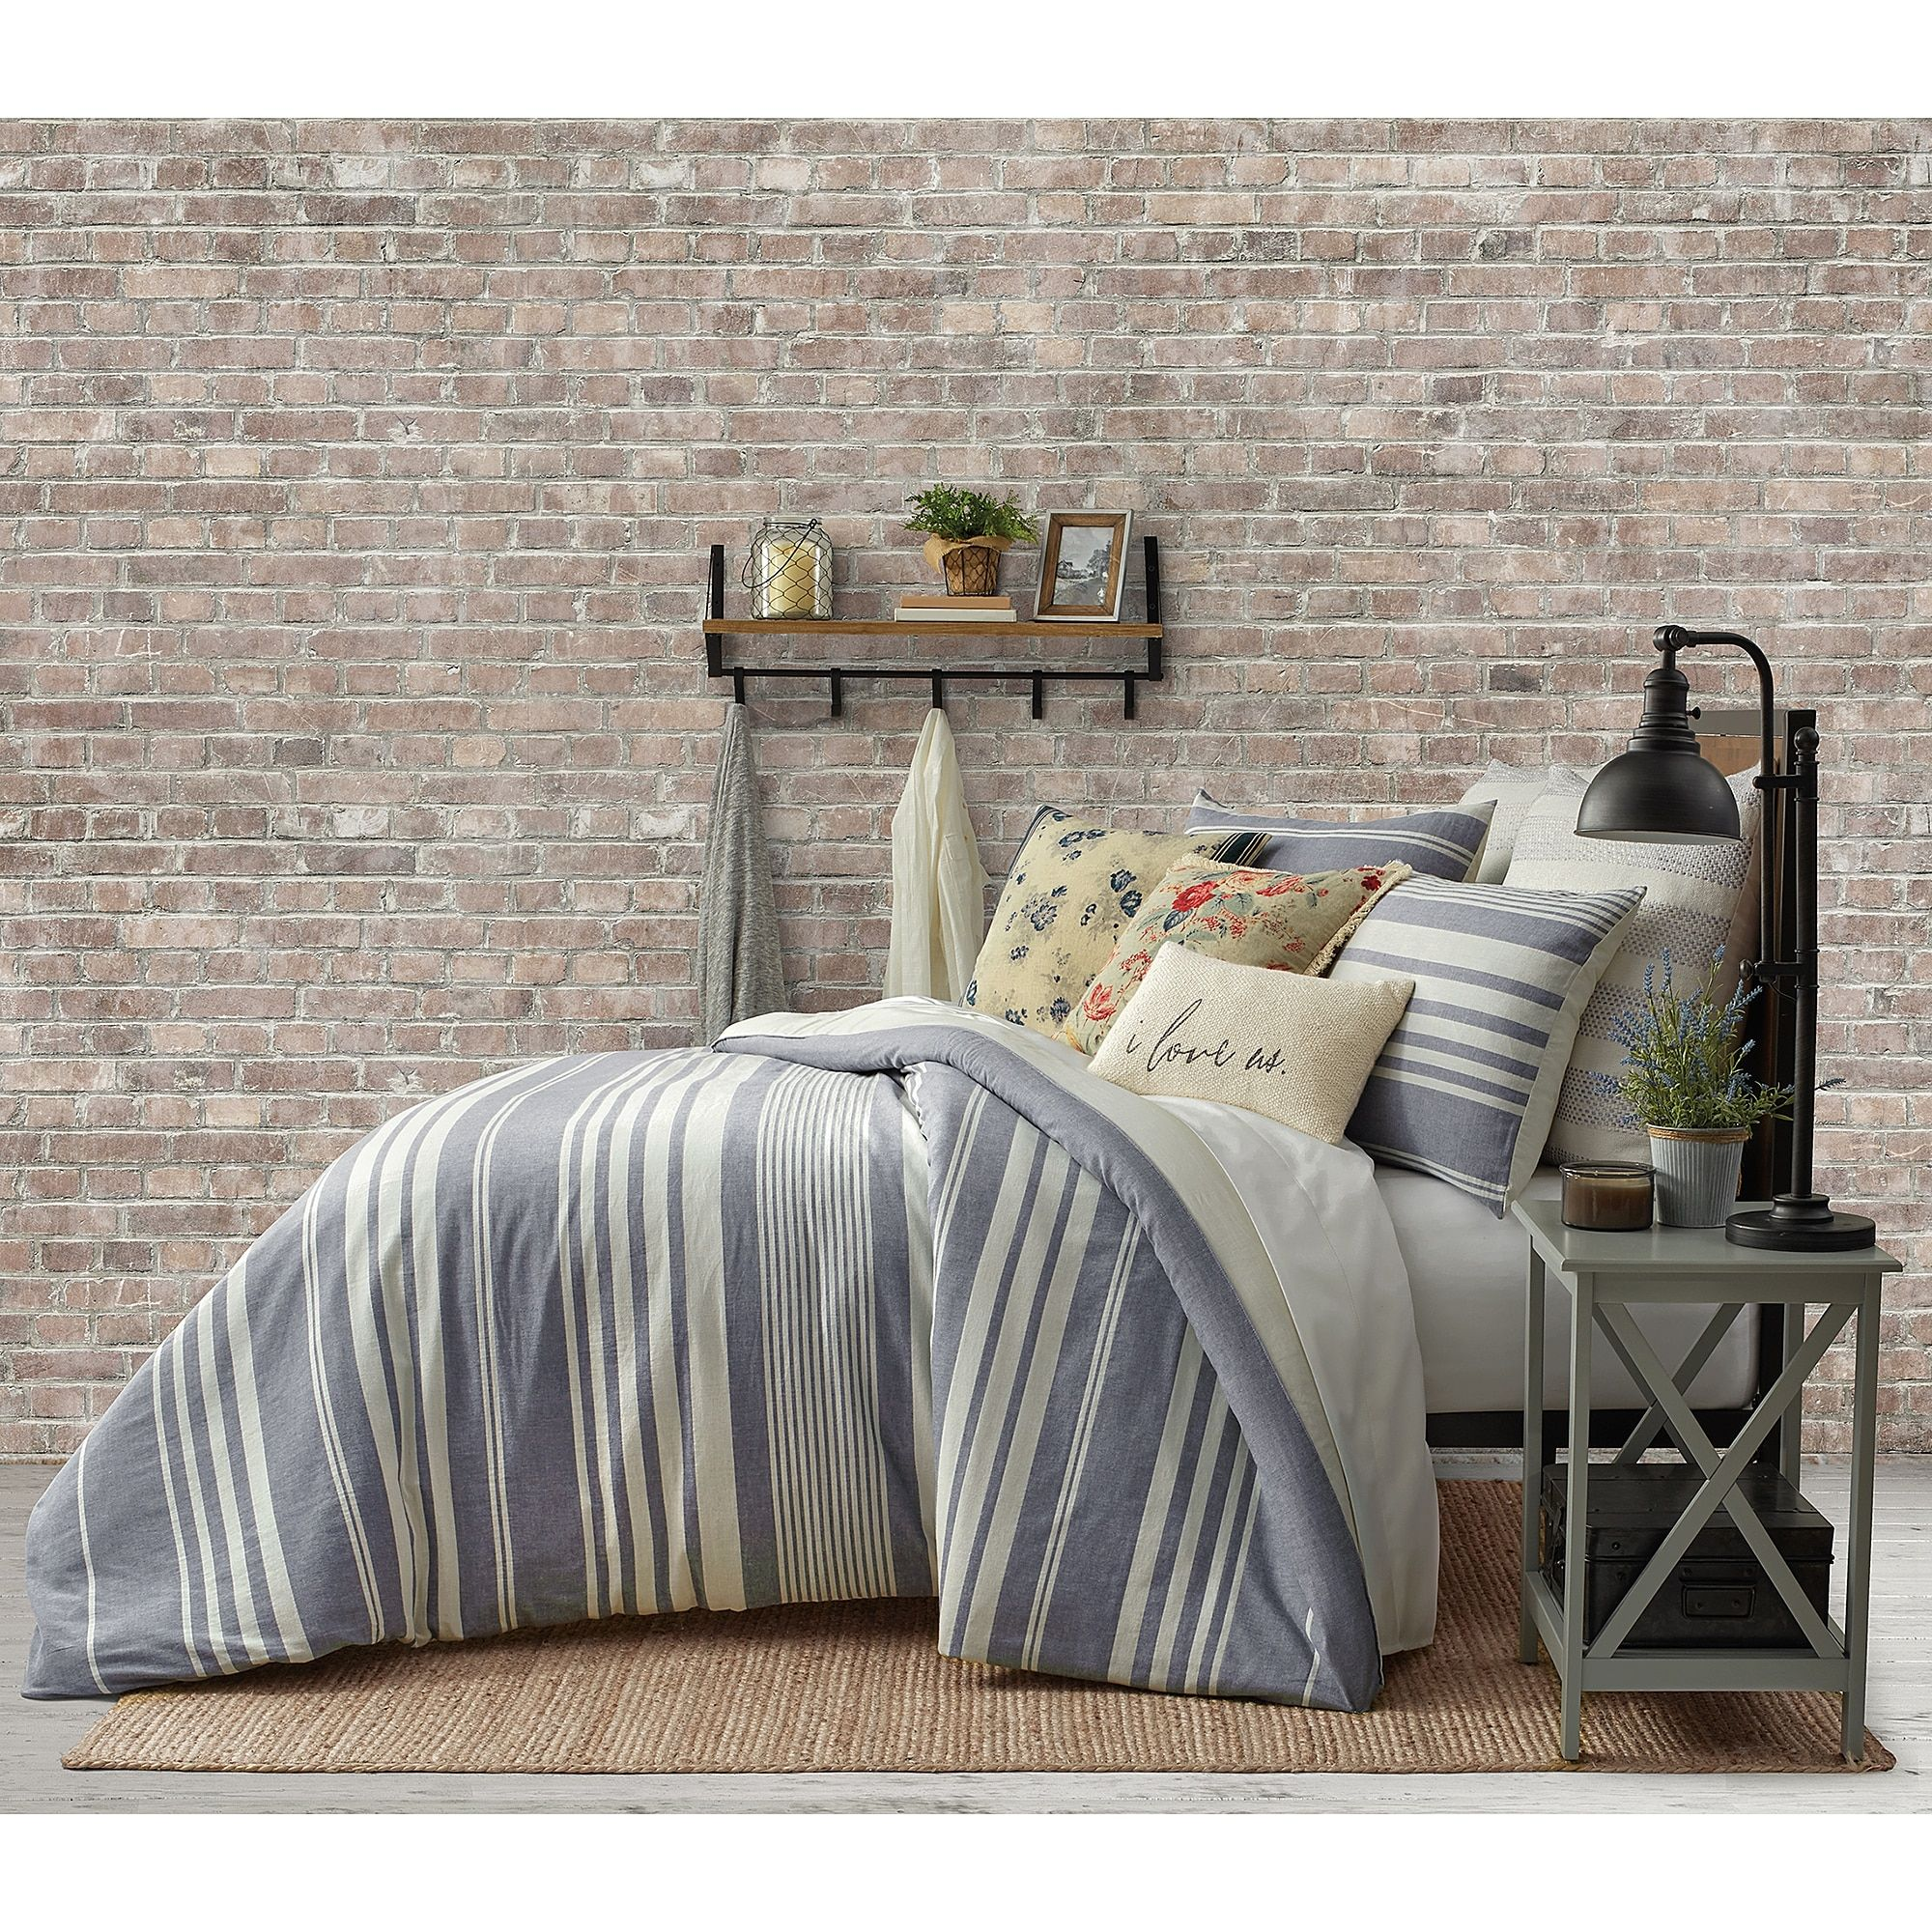 Bee Willow Home Yarn Dye Stripe Comforter Set Comforter Sets